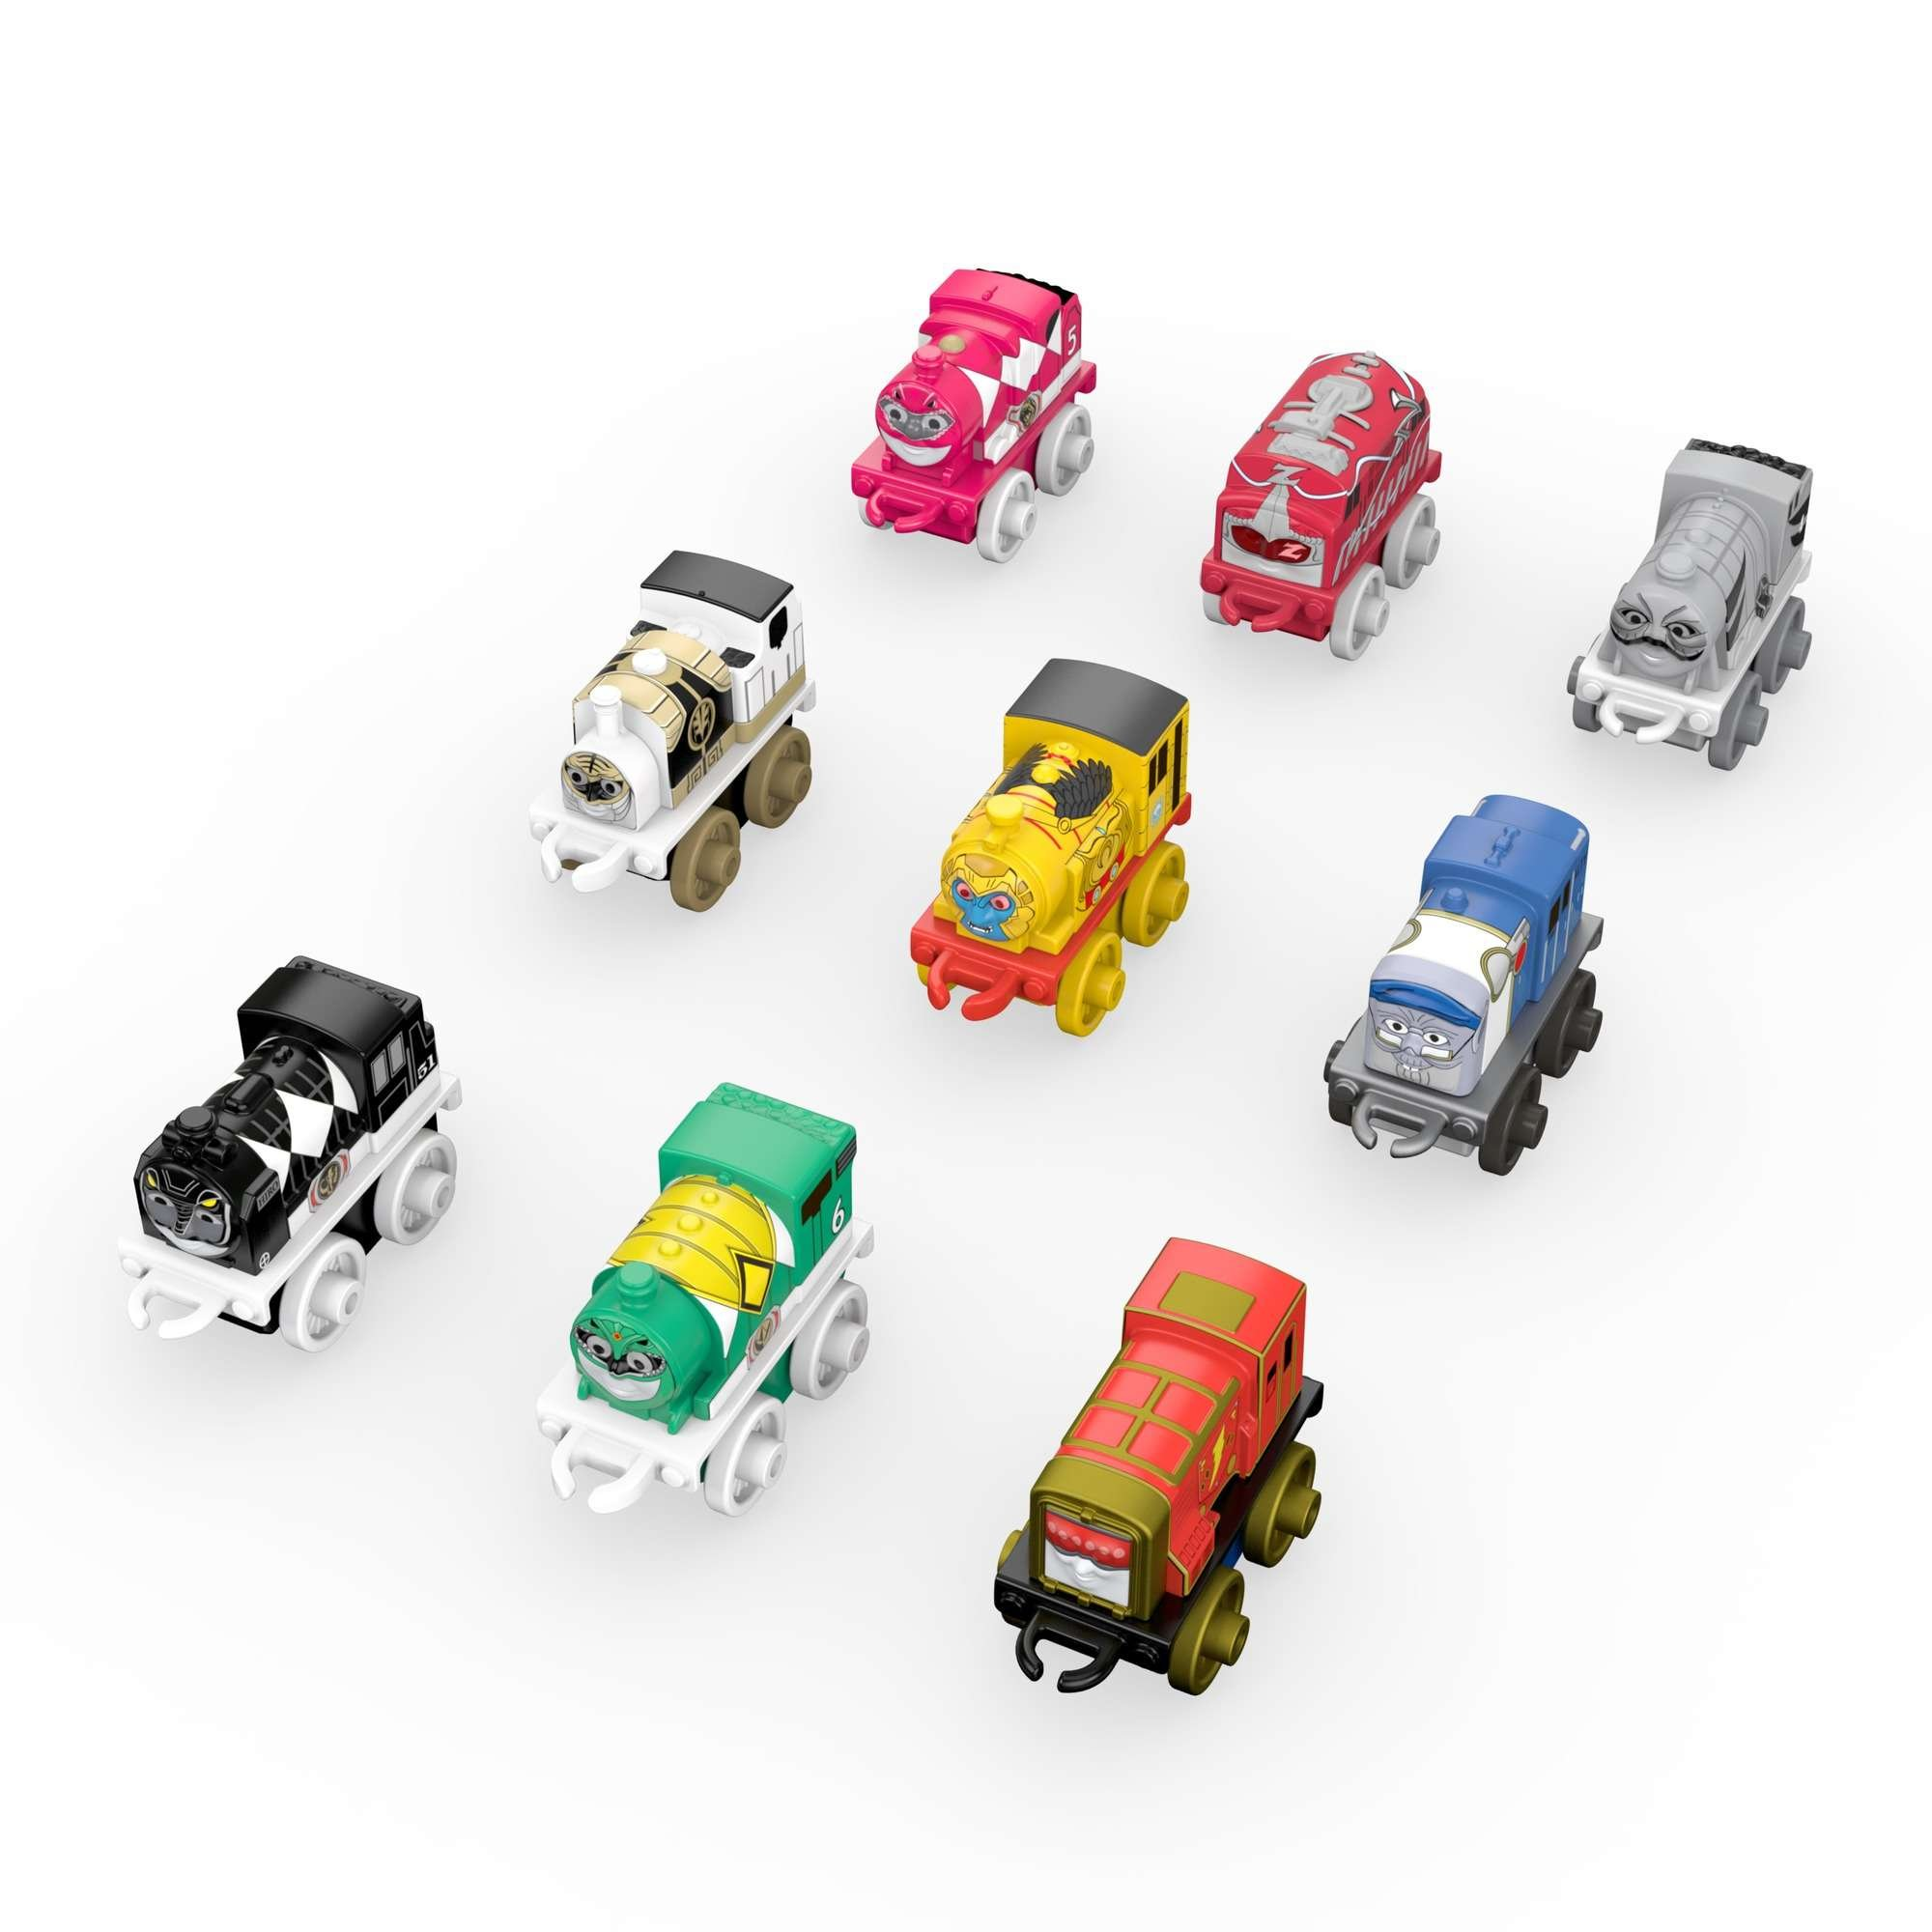 Fisher-Price Thomas & Friends MINIS, Mighty Morphin Power Rangers (9-Pack)